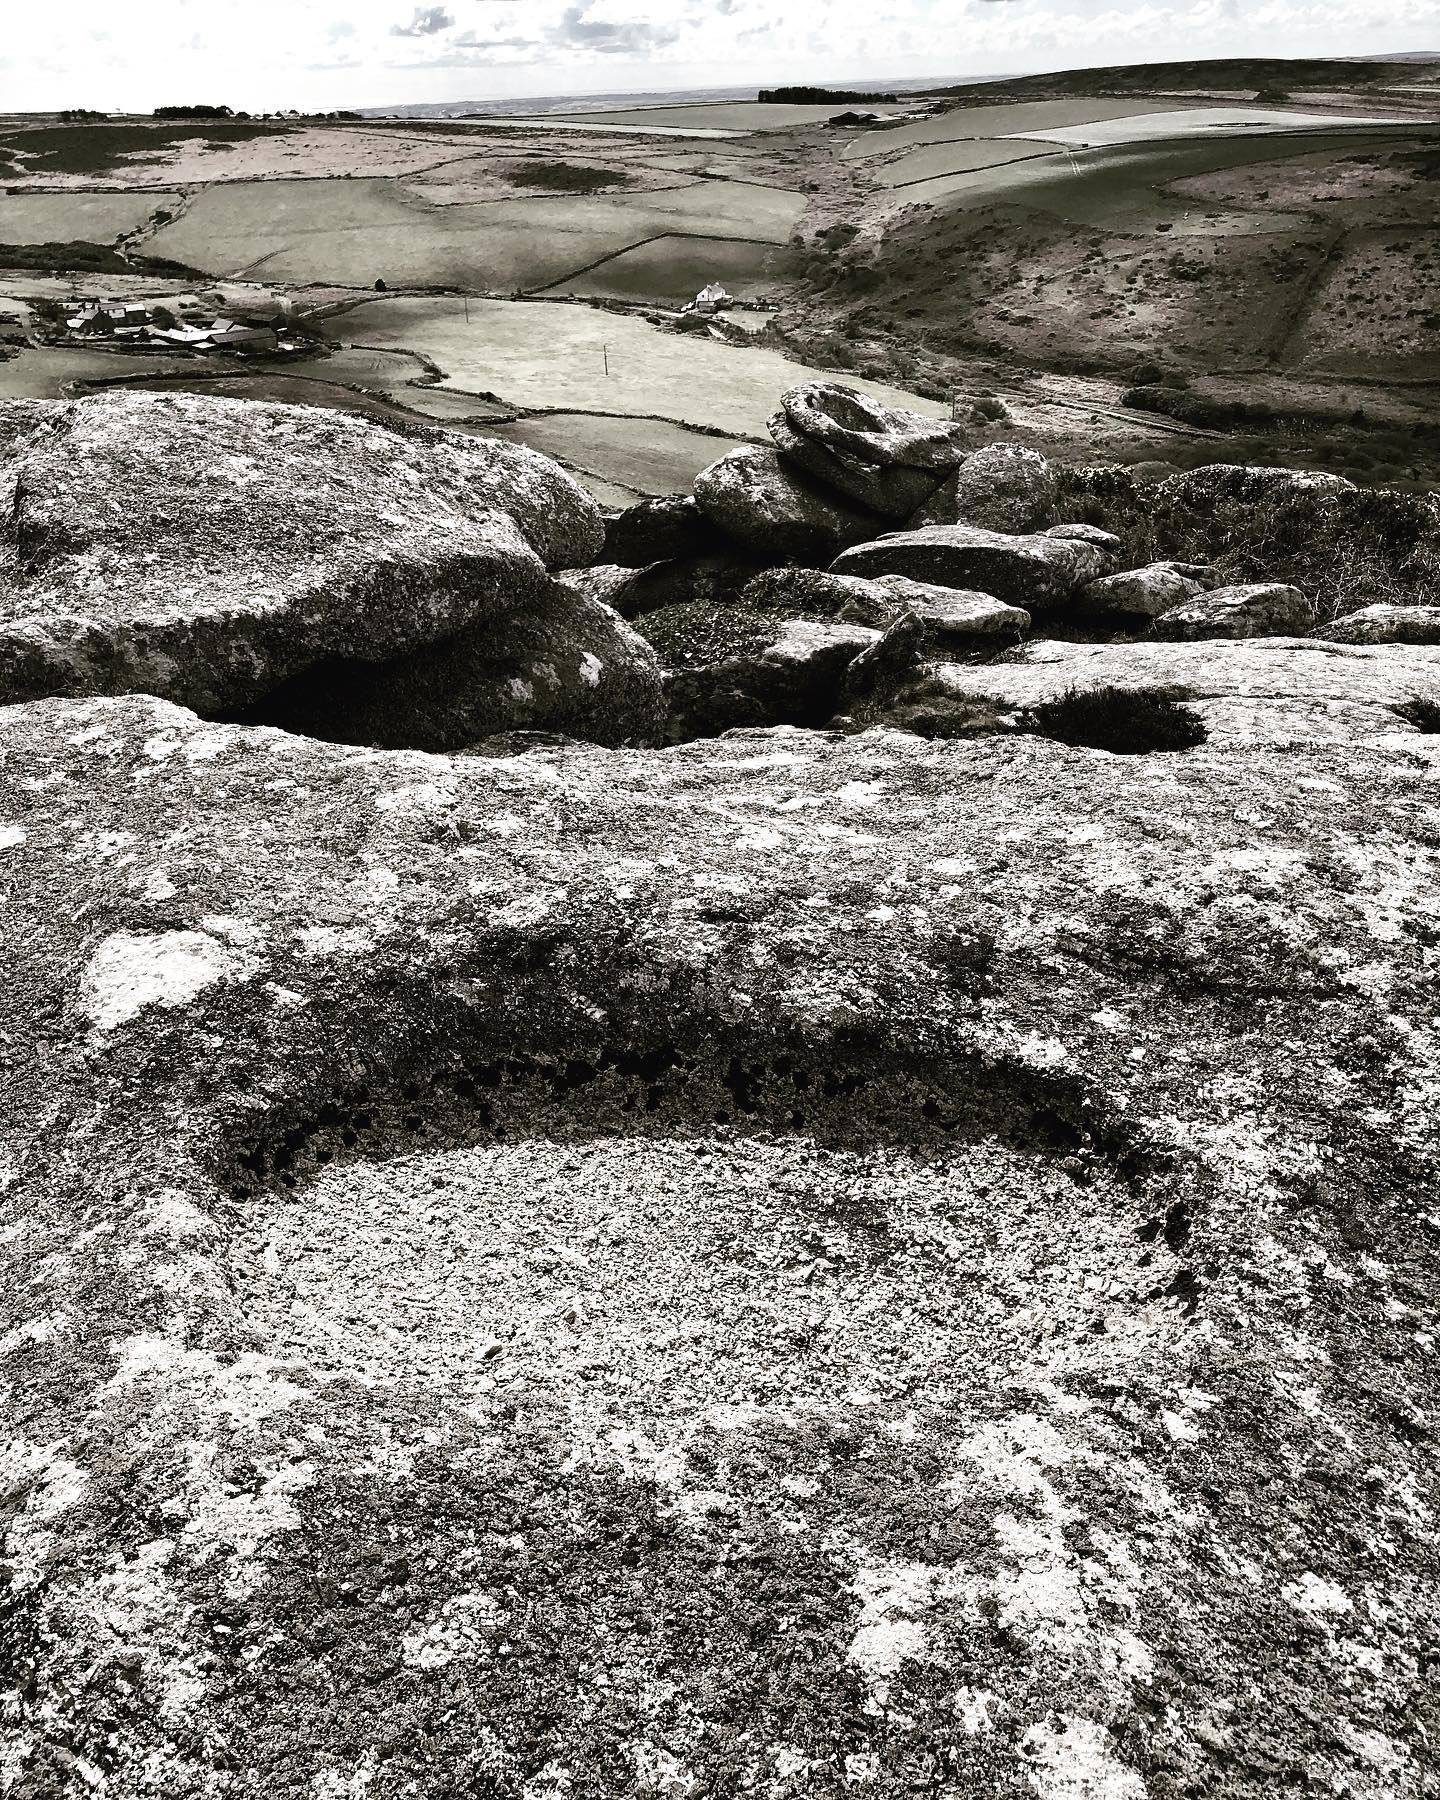 solutions basins . zennor hill. special stones that hold fresh rain water ; the basins slowly wearing through the granite over millennia. undoubtable held in great reverence by our ancestors who saw special significance in there presence on  these hill sites. sometimes accompanied by cup marks believed in turn these basins to be the work of their ancestors marking out their territory.  some of these basins work their way through the whole tor stone as seen herein the middle ground and are found incorporated into early monuments such as the men-an-tol and at carn brea. ..#solutionsbasin #monument #tors #waterbasins #ancestors #archaeology #ancienthistory #prehistory #ancientwisdom.